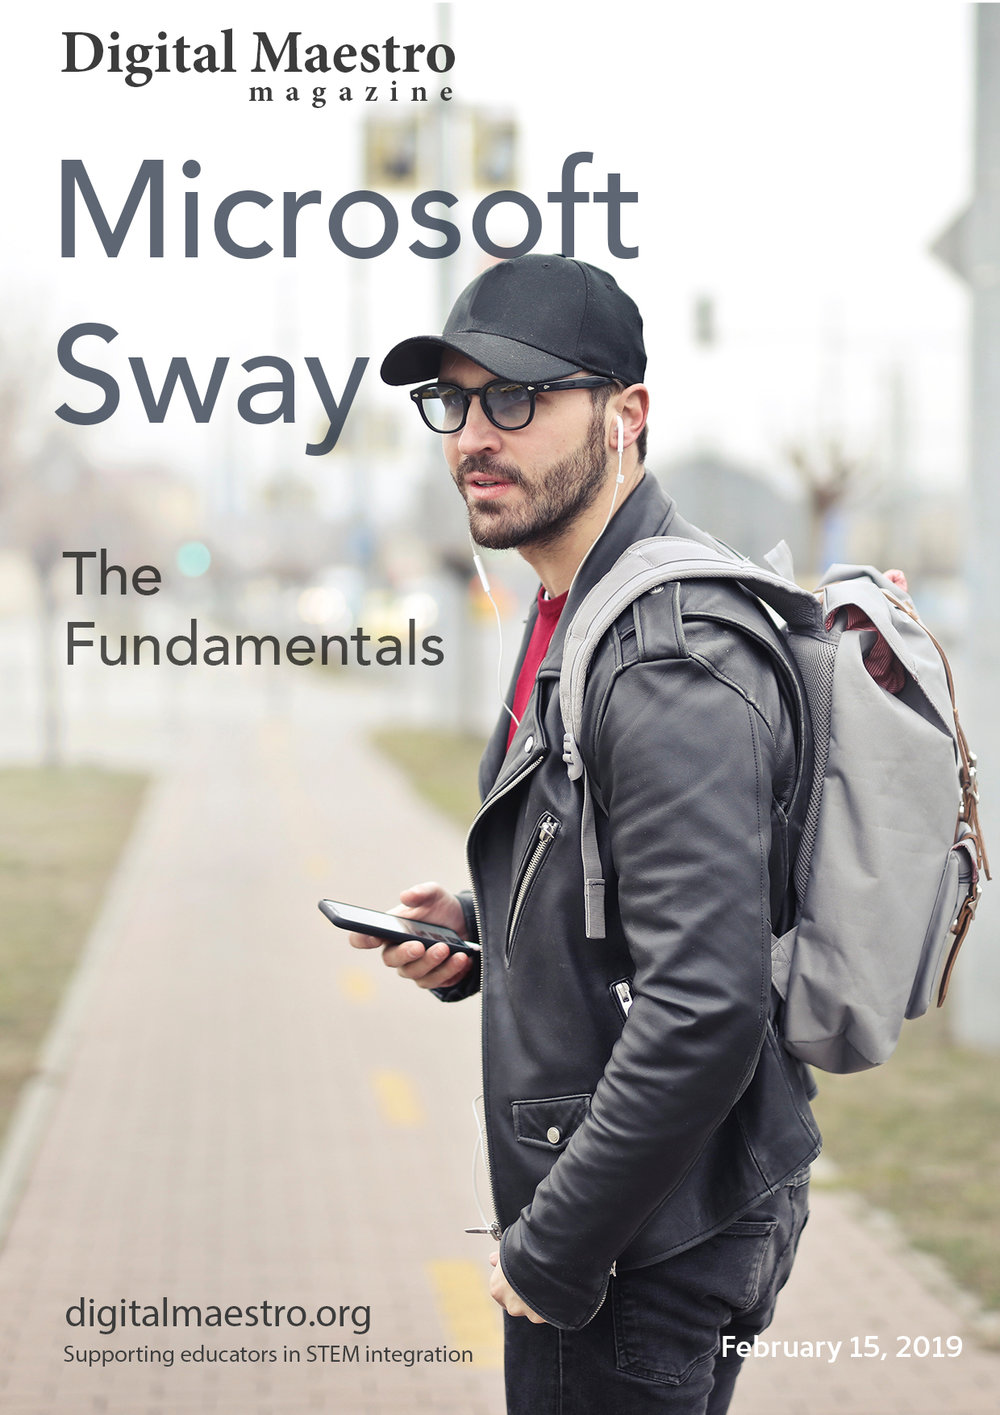 Microsoft Sway - Fundamentals for student projects